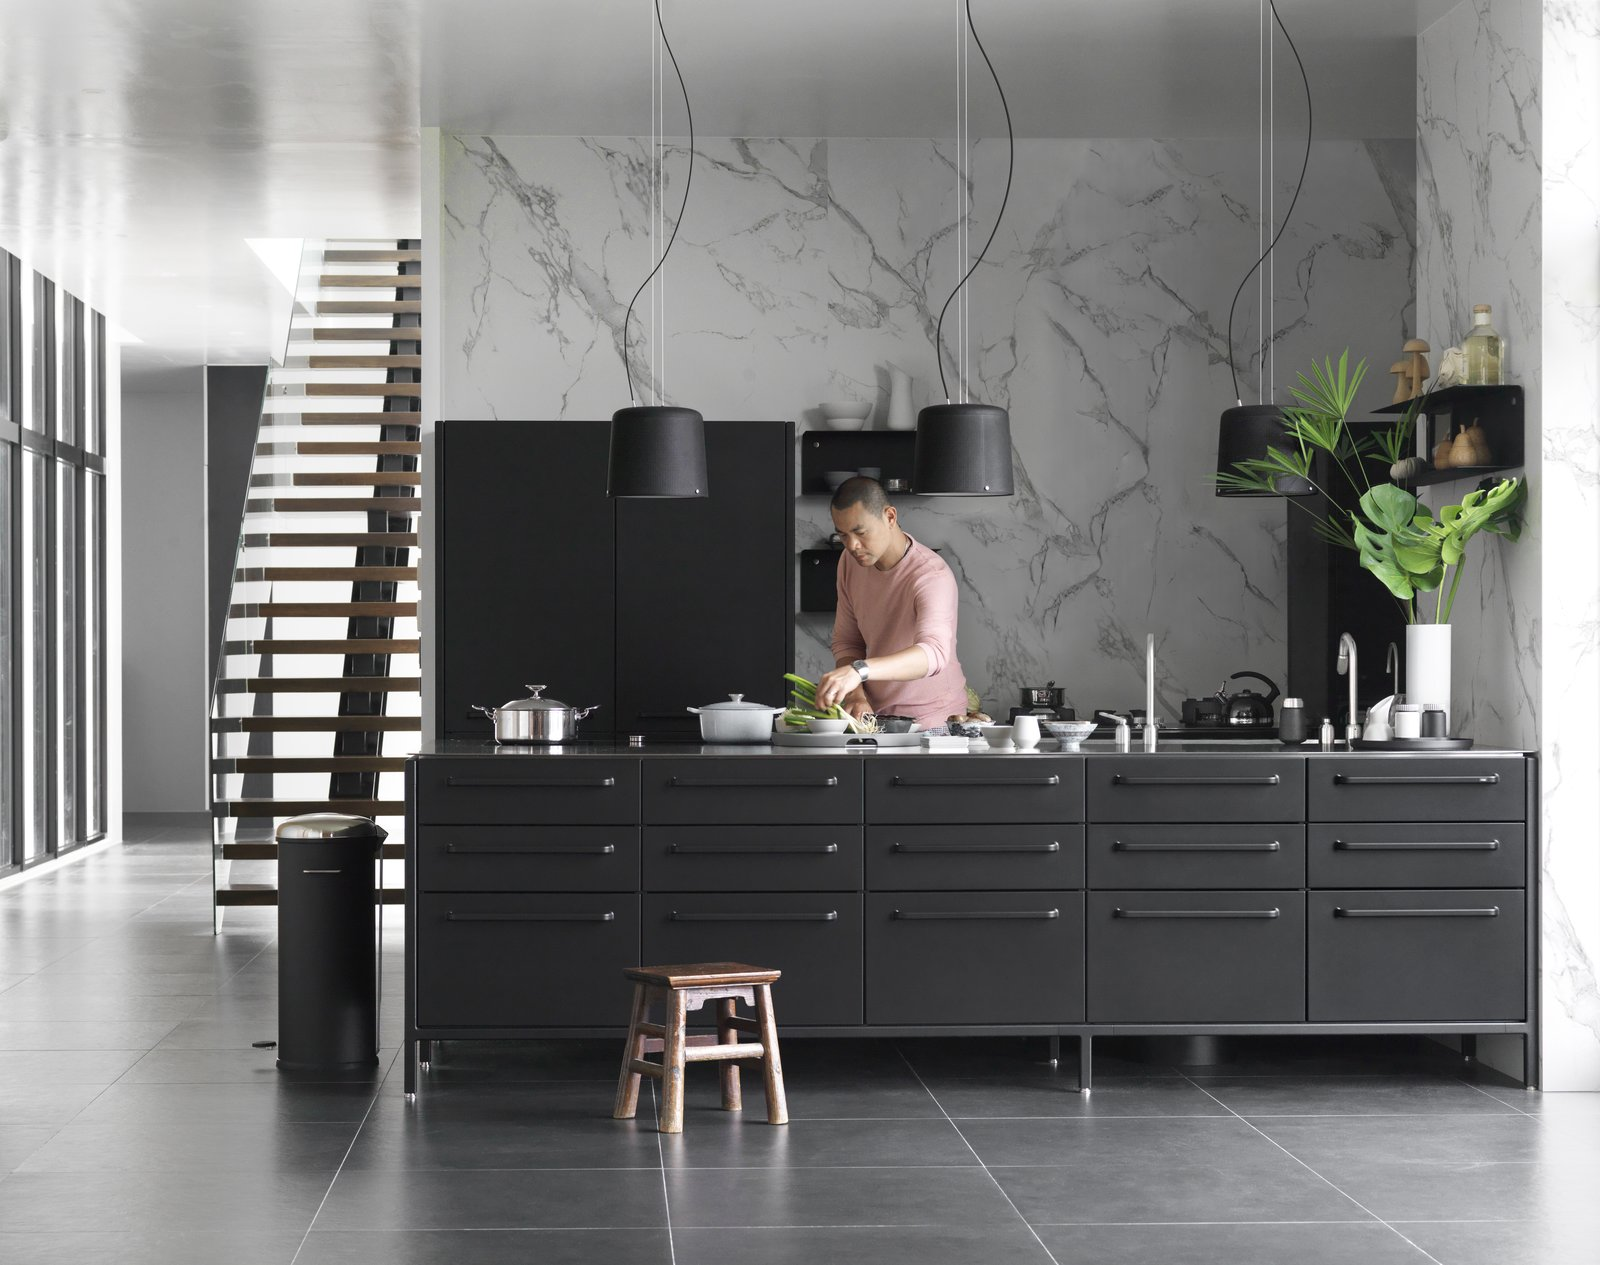 Kitchen, Marble Backsplashe, Metal Counter, and Metal Cabinet Two of chef André Chiang's restaurants have appeared on the annual World's 50 Best Restaurants list. So it makes sense that at his new home in Taiwan, which he largely designed himself, the kitchen takes center stage. To outfit it, André worked with Vipp, the maker of everything from the black steel island and stainless-steel countertops to the faucets, cabinets, shelves, pendant light fixtures—even the tea kettle and trash bin.  Photo 1 of 21 in Michelin-Starred Chef André Chiang's New Home in Rural Taiwan